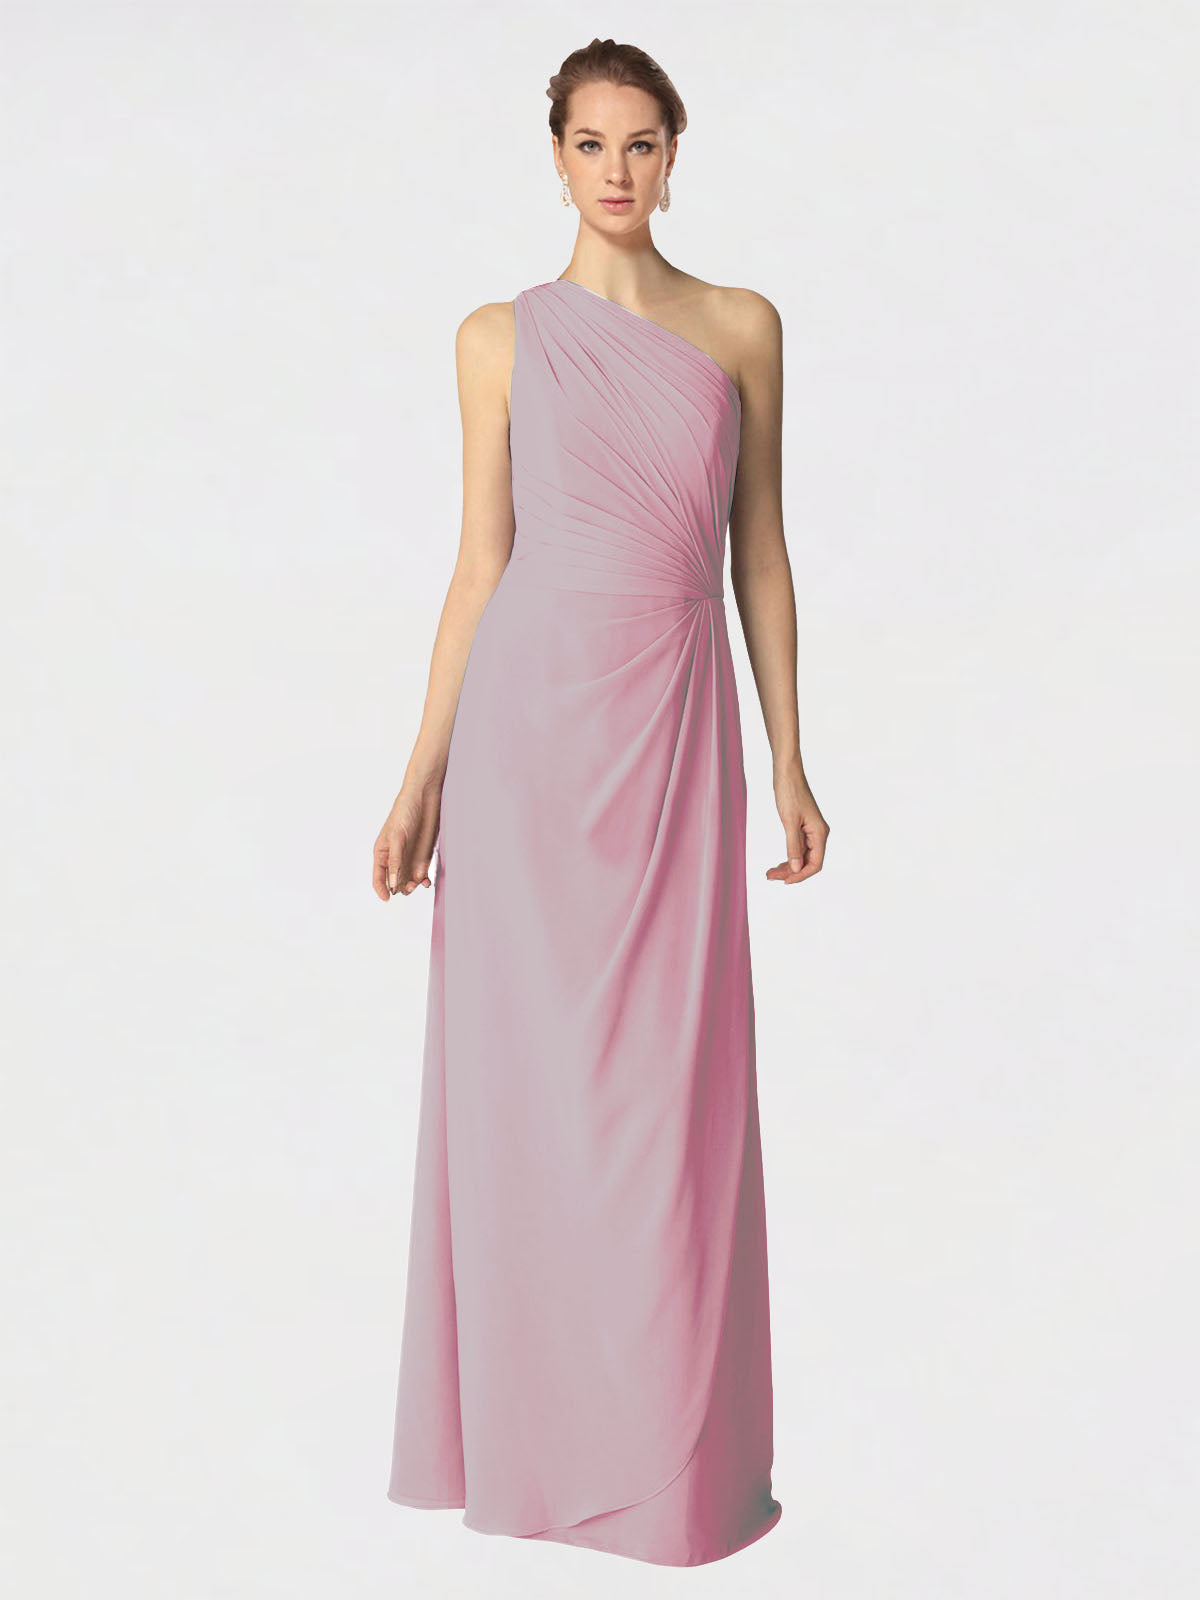 Long A-Line One Shoulder Sleeveless Primrose Chiffon Bridesmaid Dress Aurora